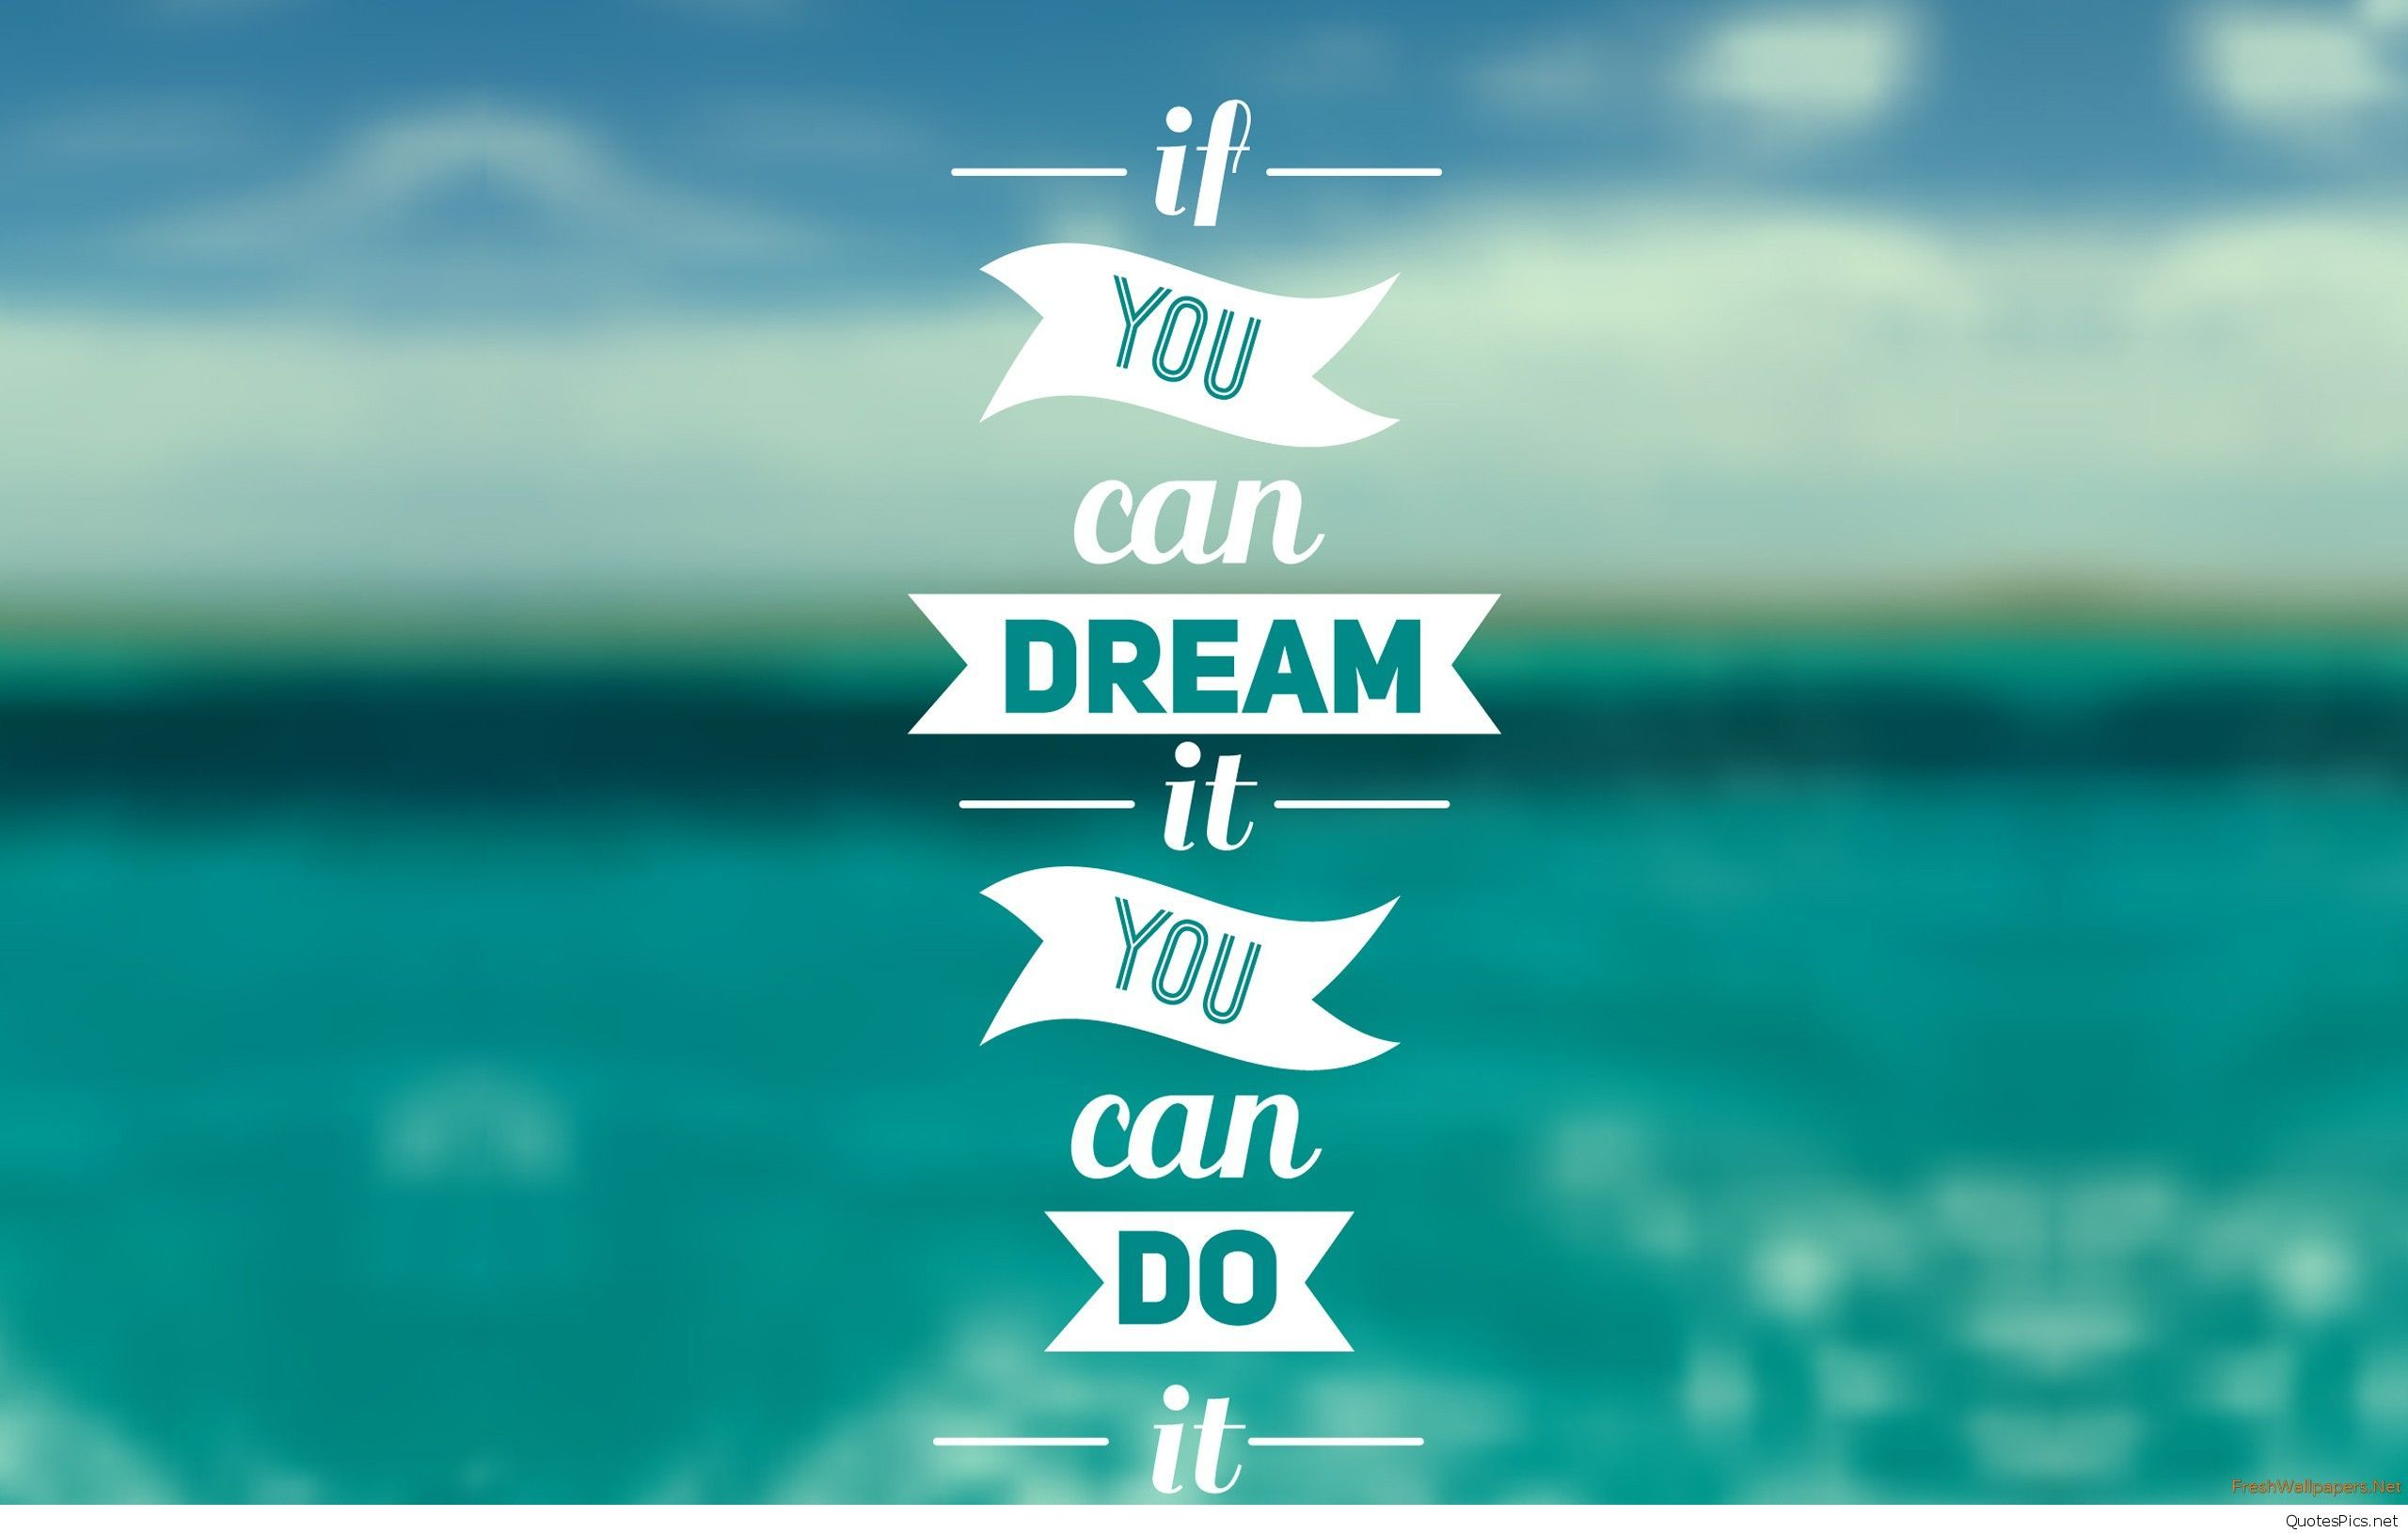 You Can Dream It Quote Wallpaper Hd Inspirational Quotes Wallpapers Wallpaper Quotes Motivational Quotes Wallpaper